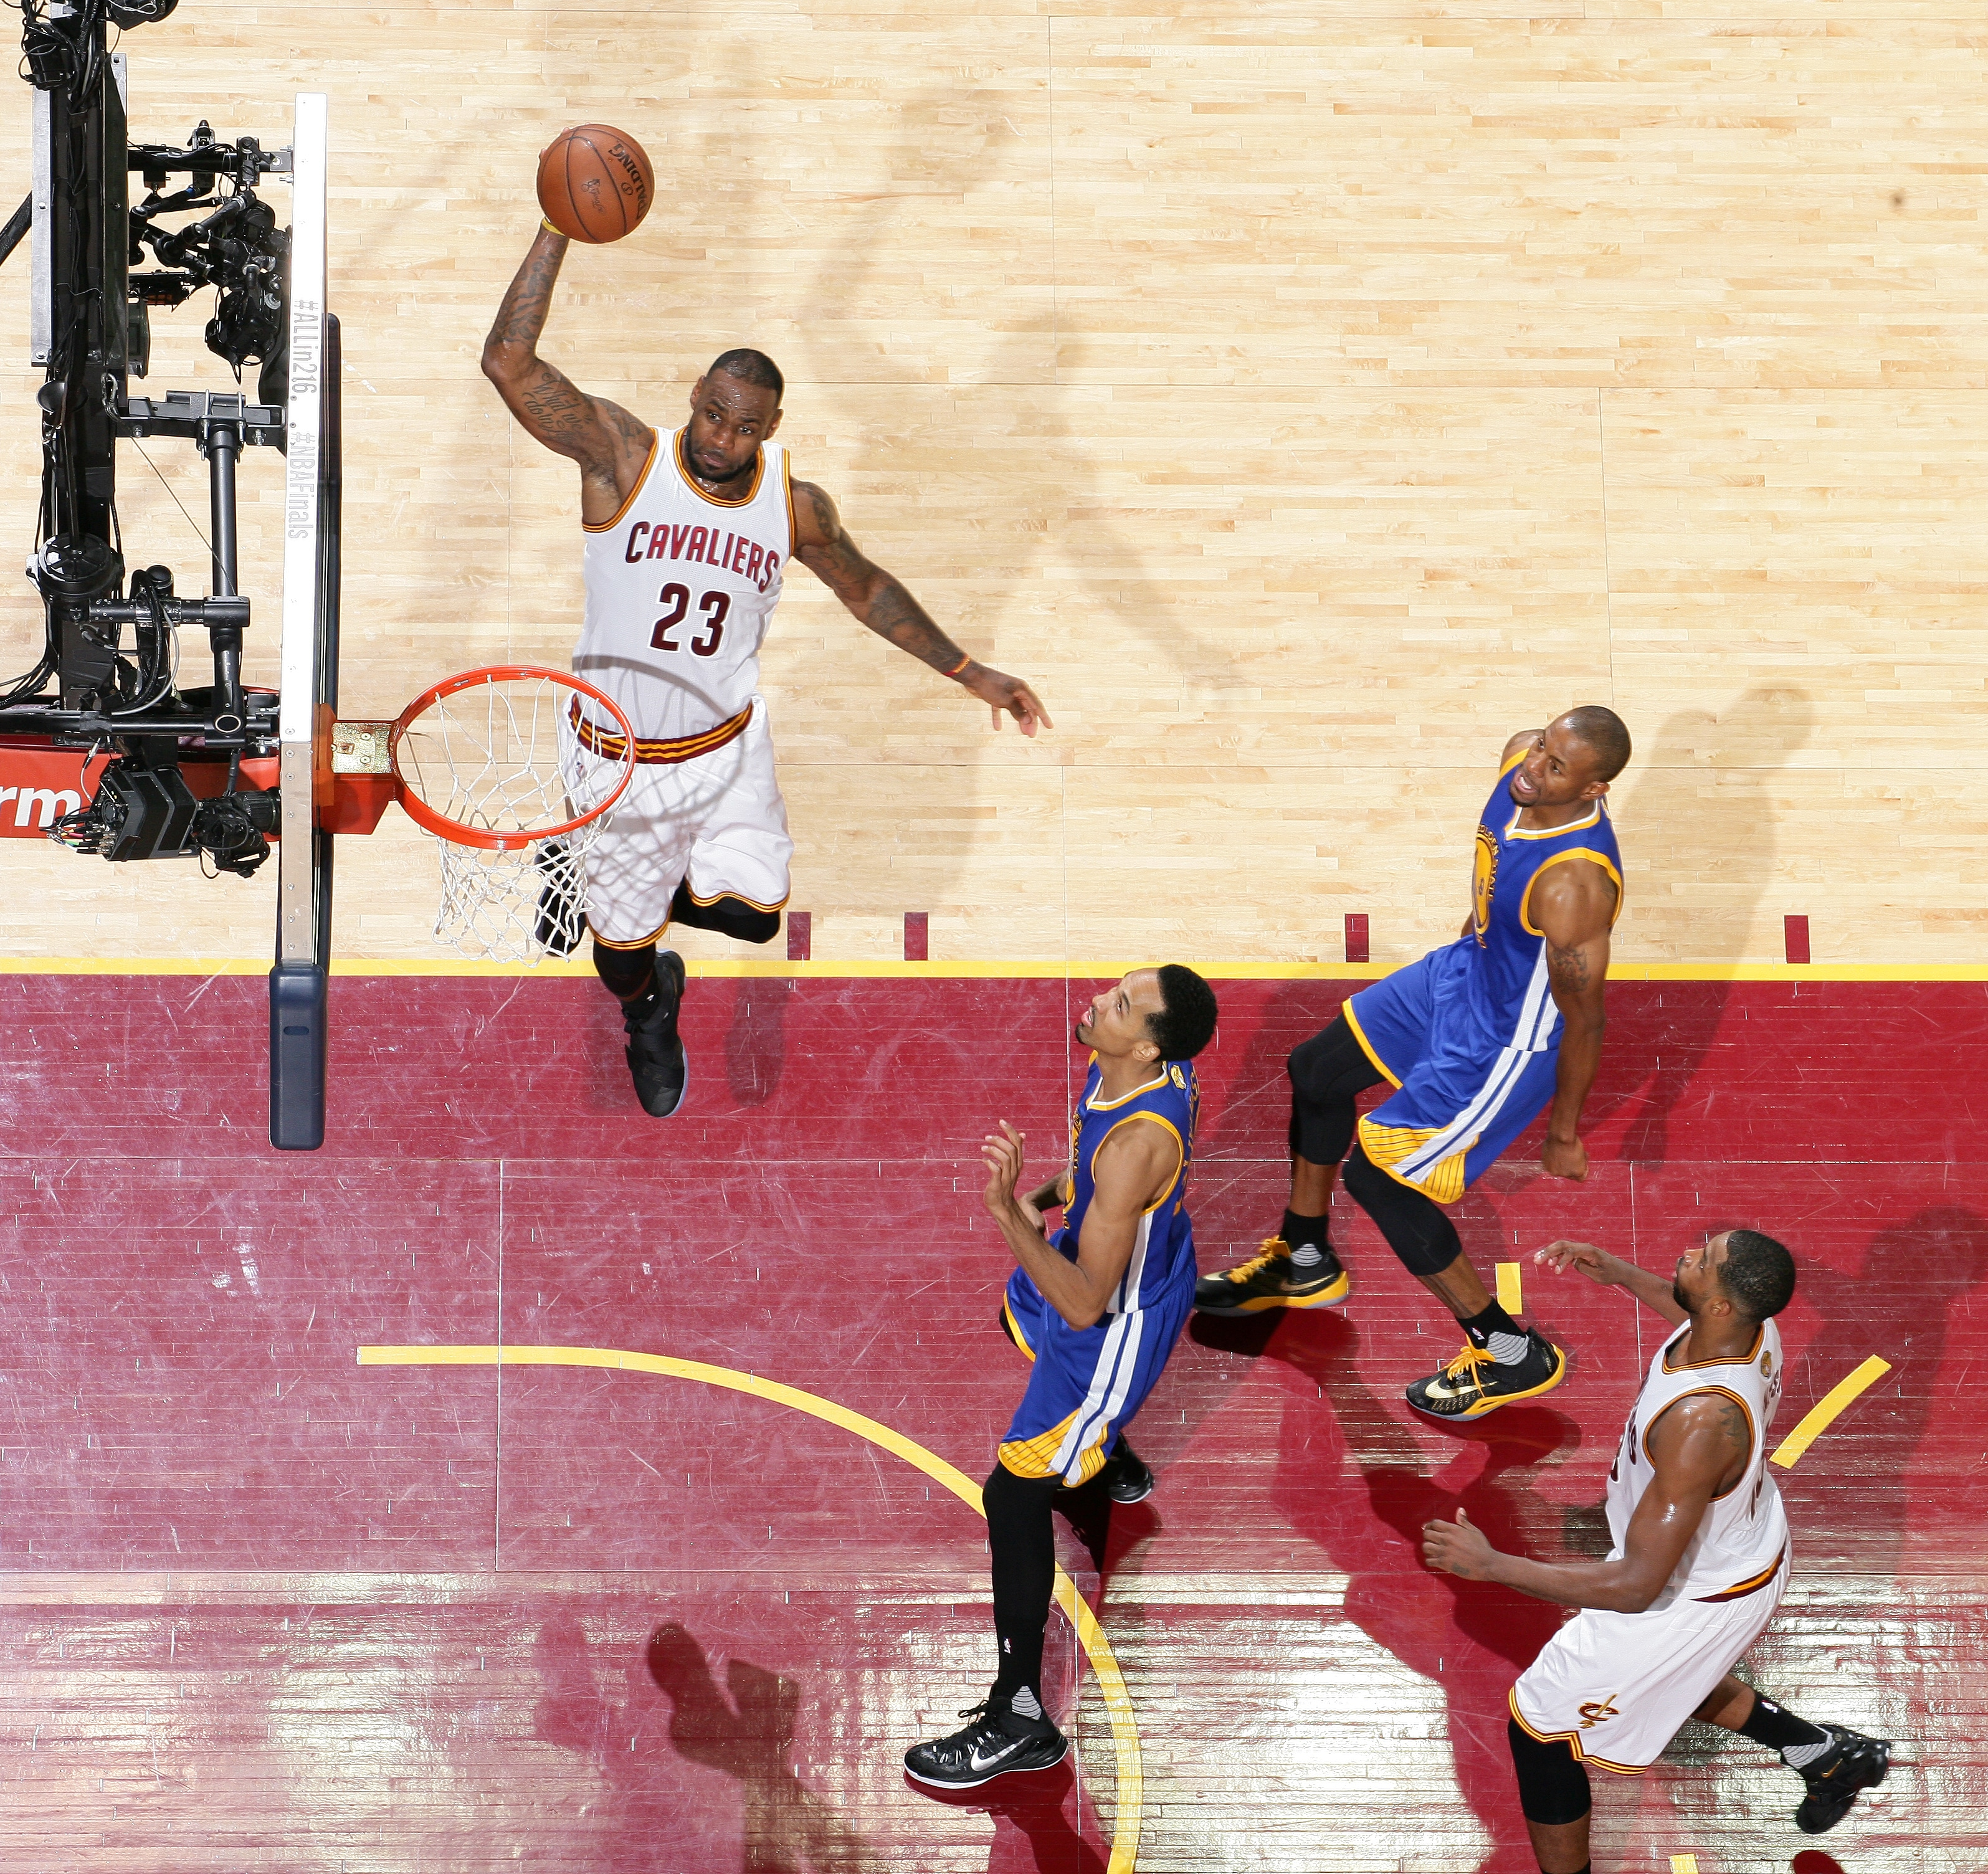 Game 3 Photos: Cleveland Cavaliers at